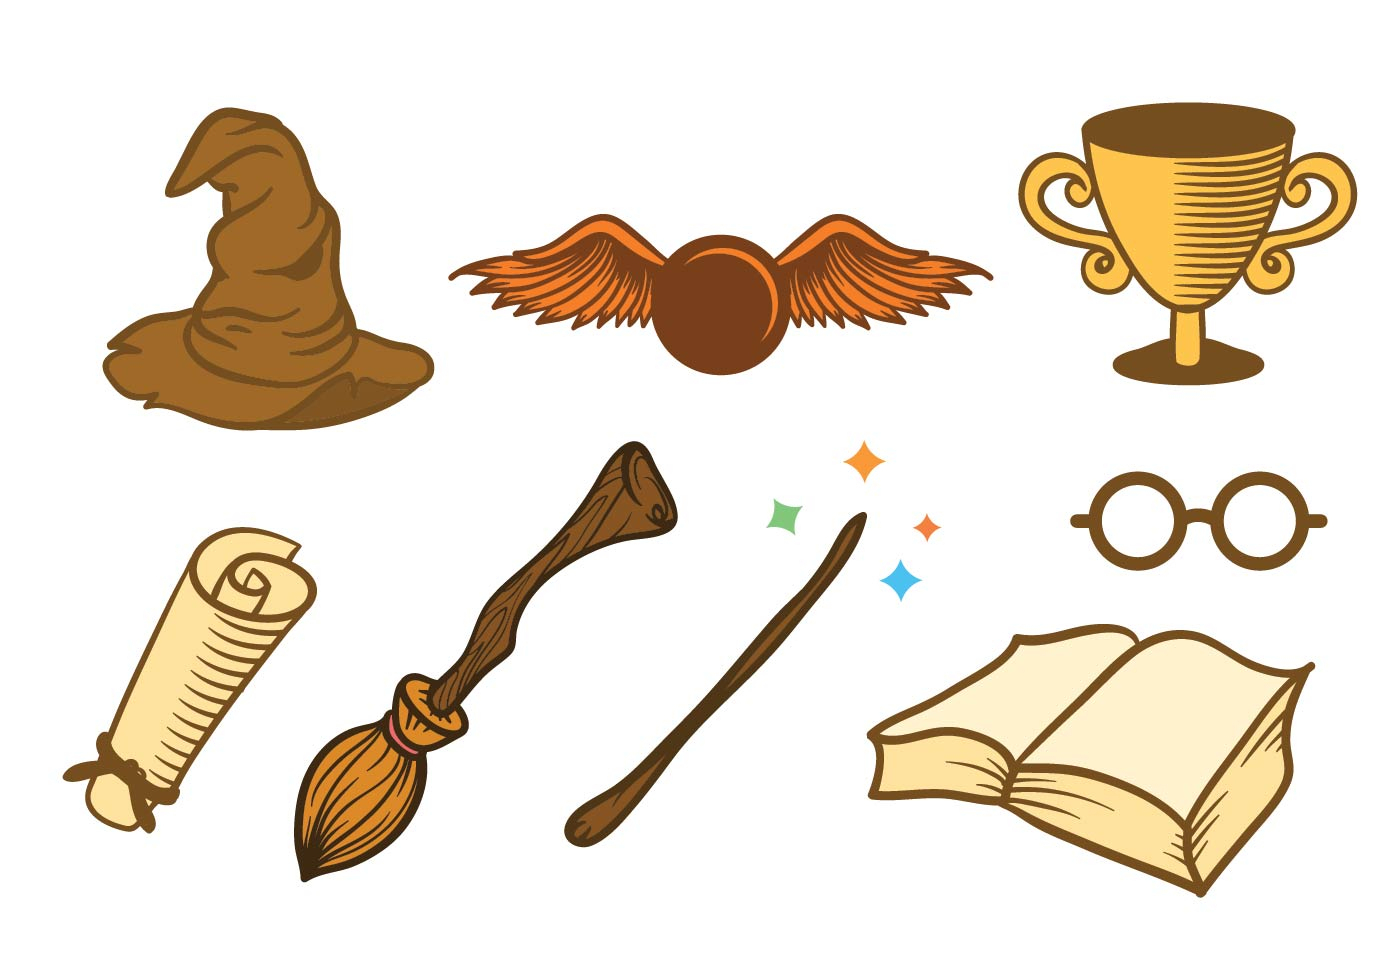 Free Harry Potter Clipart At Getdrawings.